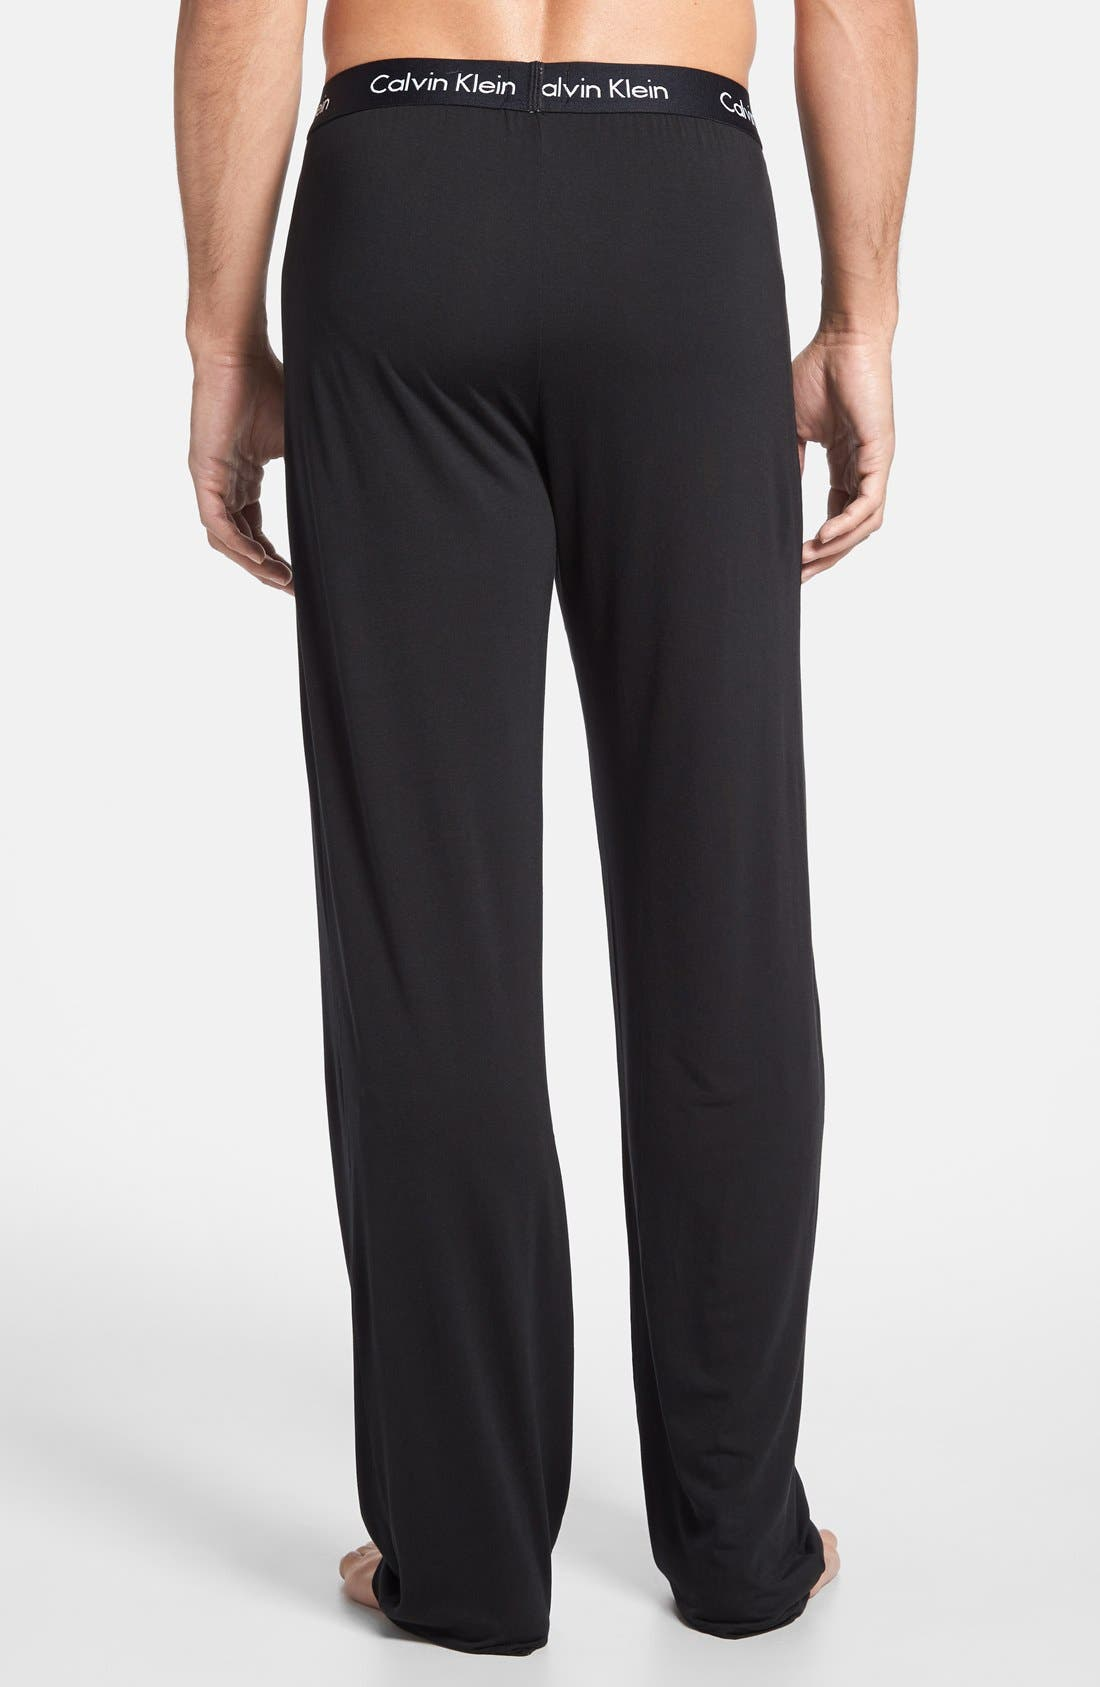 'U1143' Micromodal Lounge Pants,                             Alternate thumbnail 6, color,                             BLACK